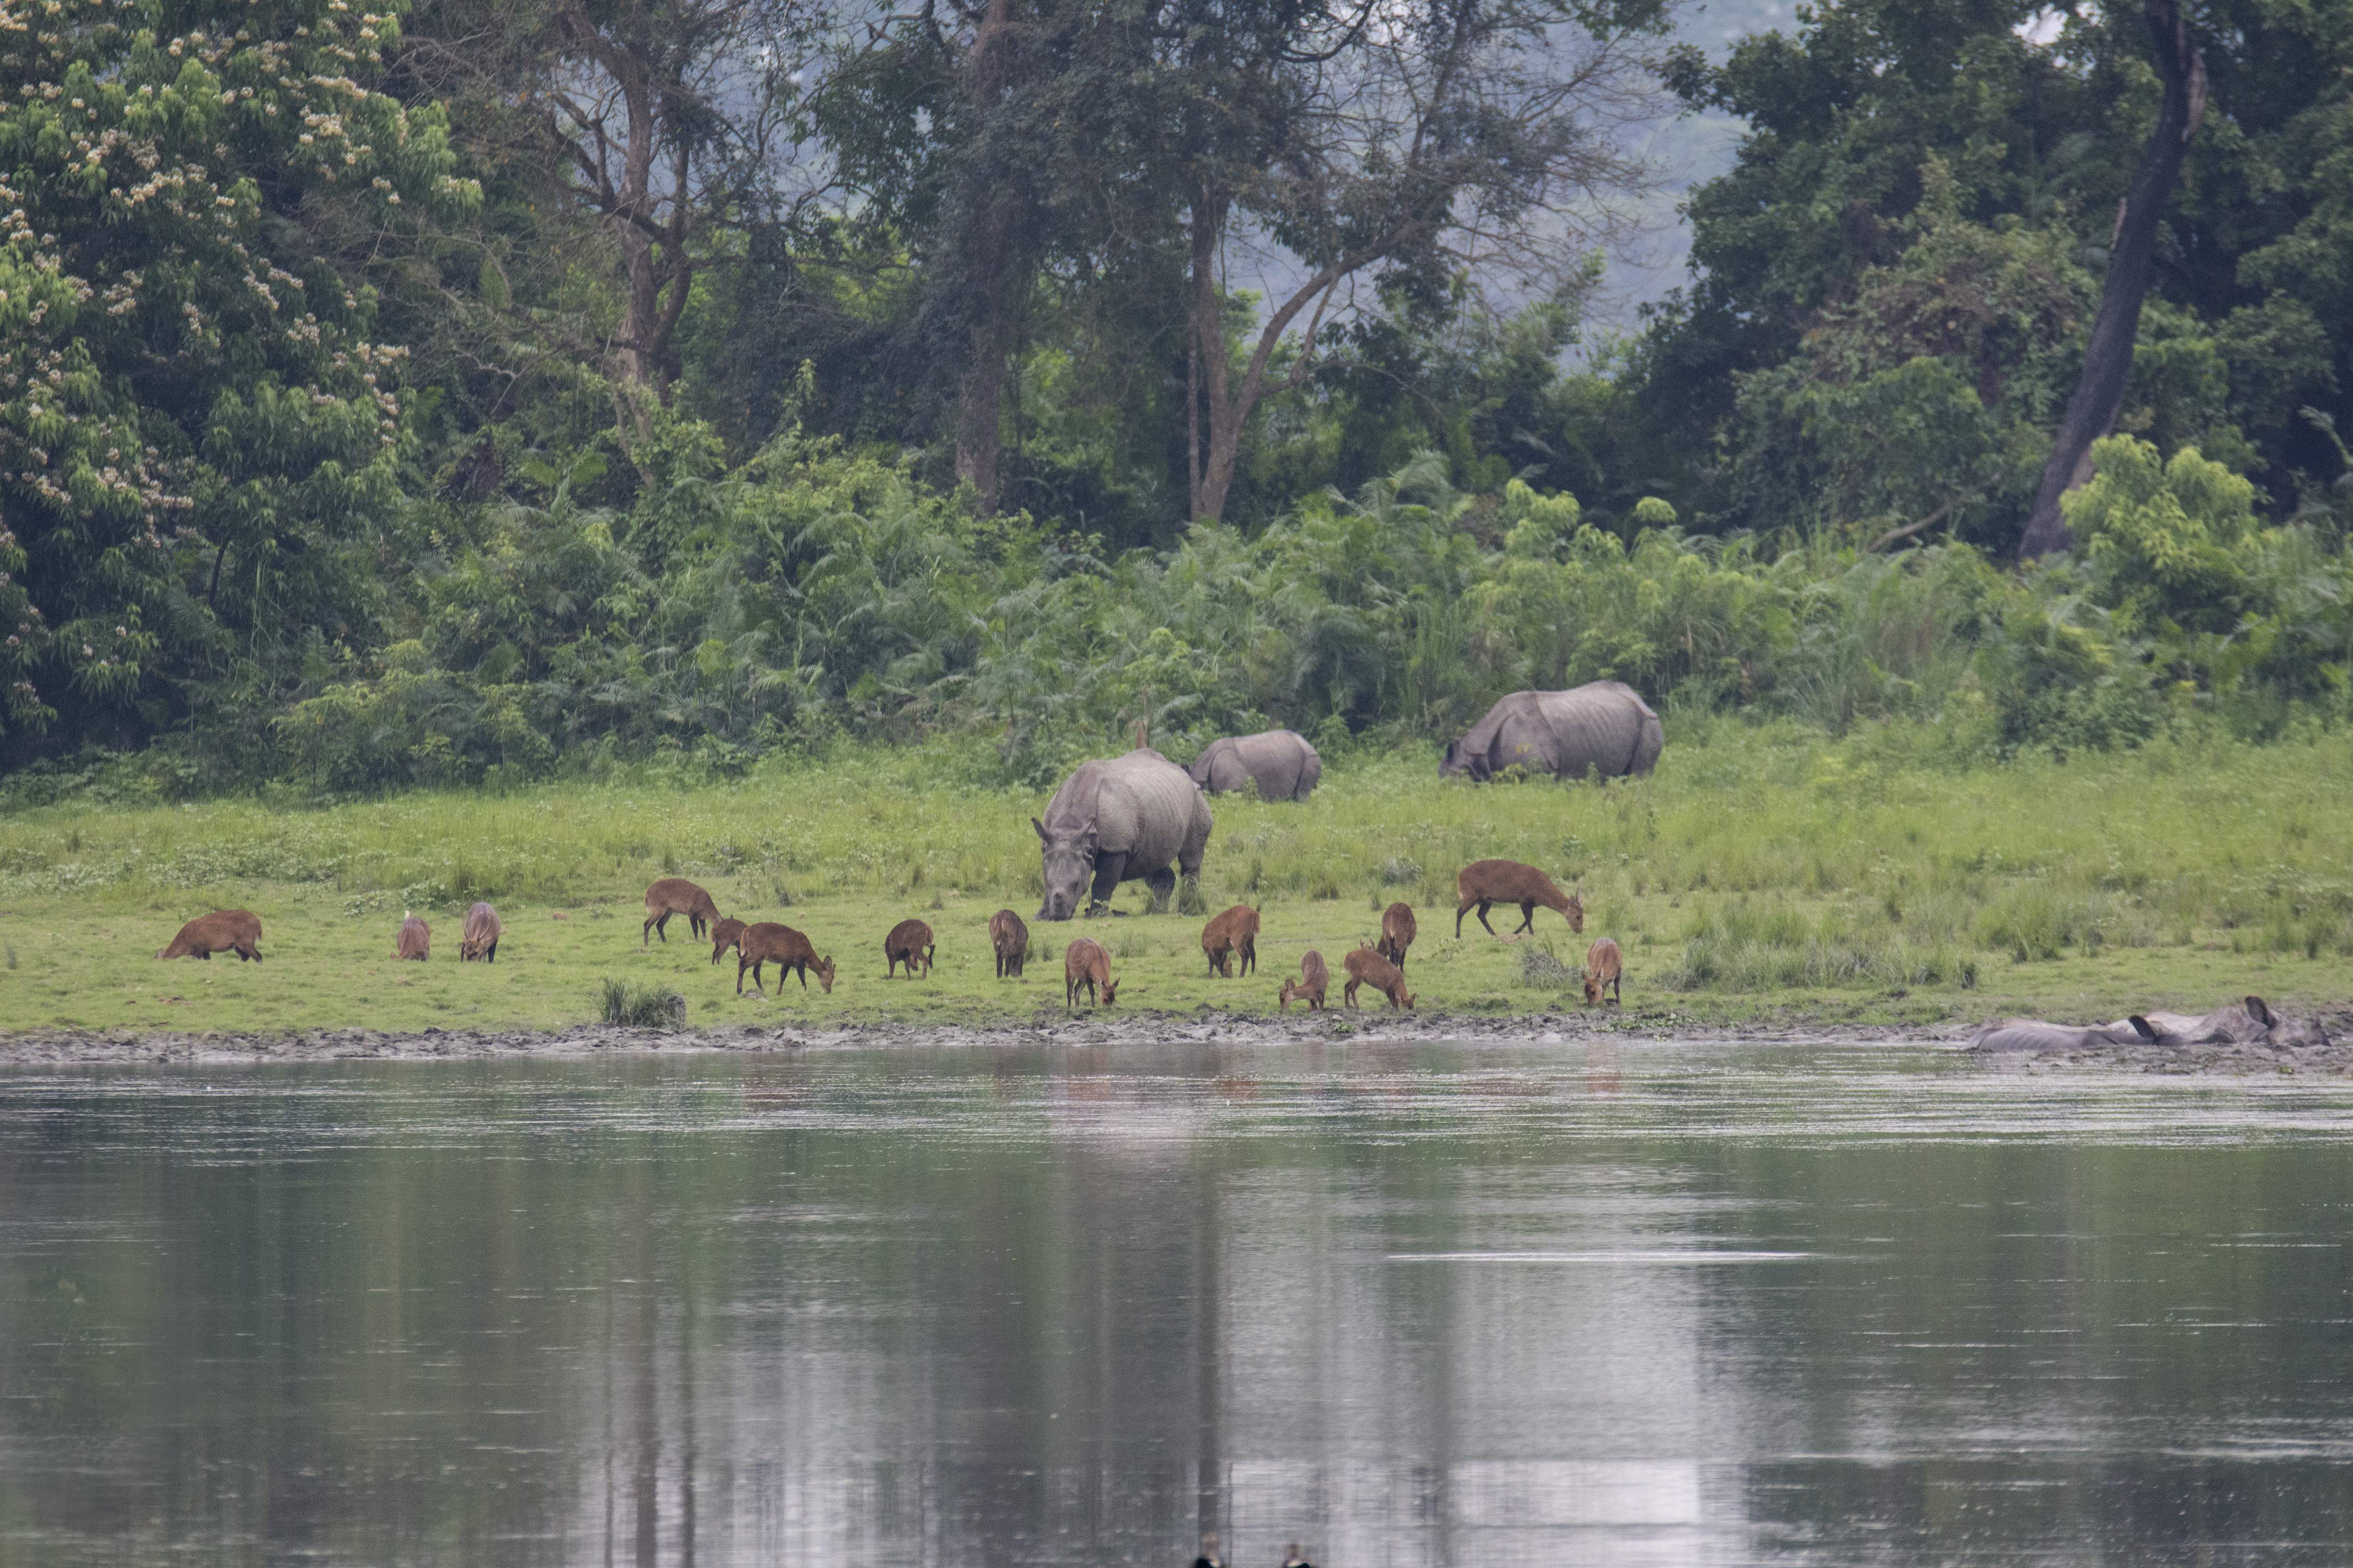 The greater one-horned rhino's habitat extends across man-made, political borders. New initiatives aim at opening corridors across national boundaries, especially between India and Nepal, and protecting the species through collaborating on research and sharing knowledge. Photo: Nejib Ahmed